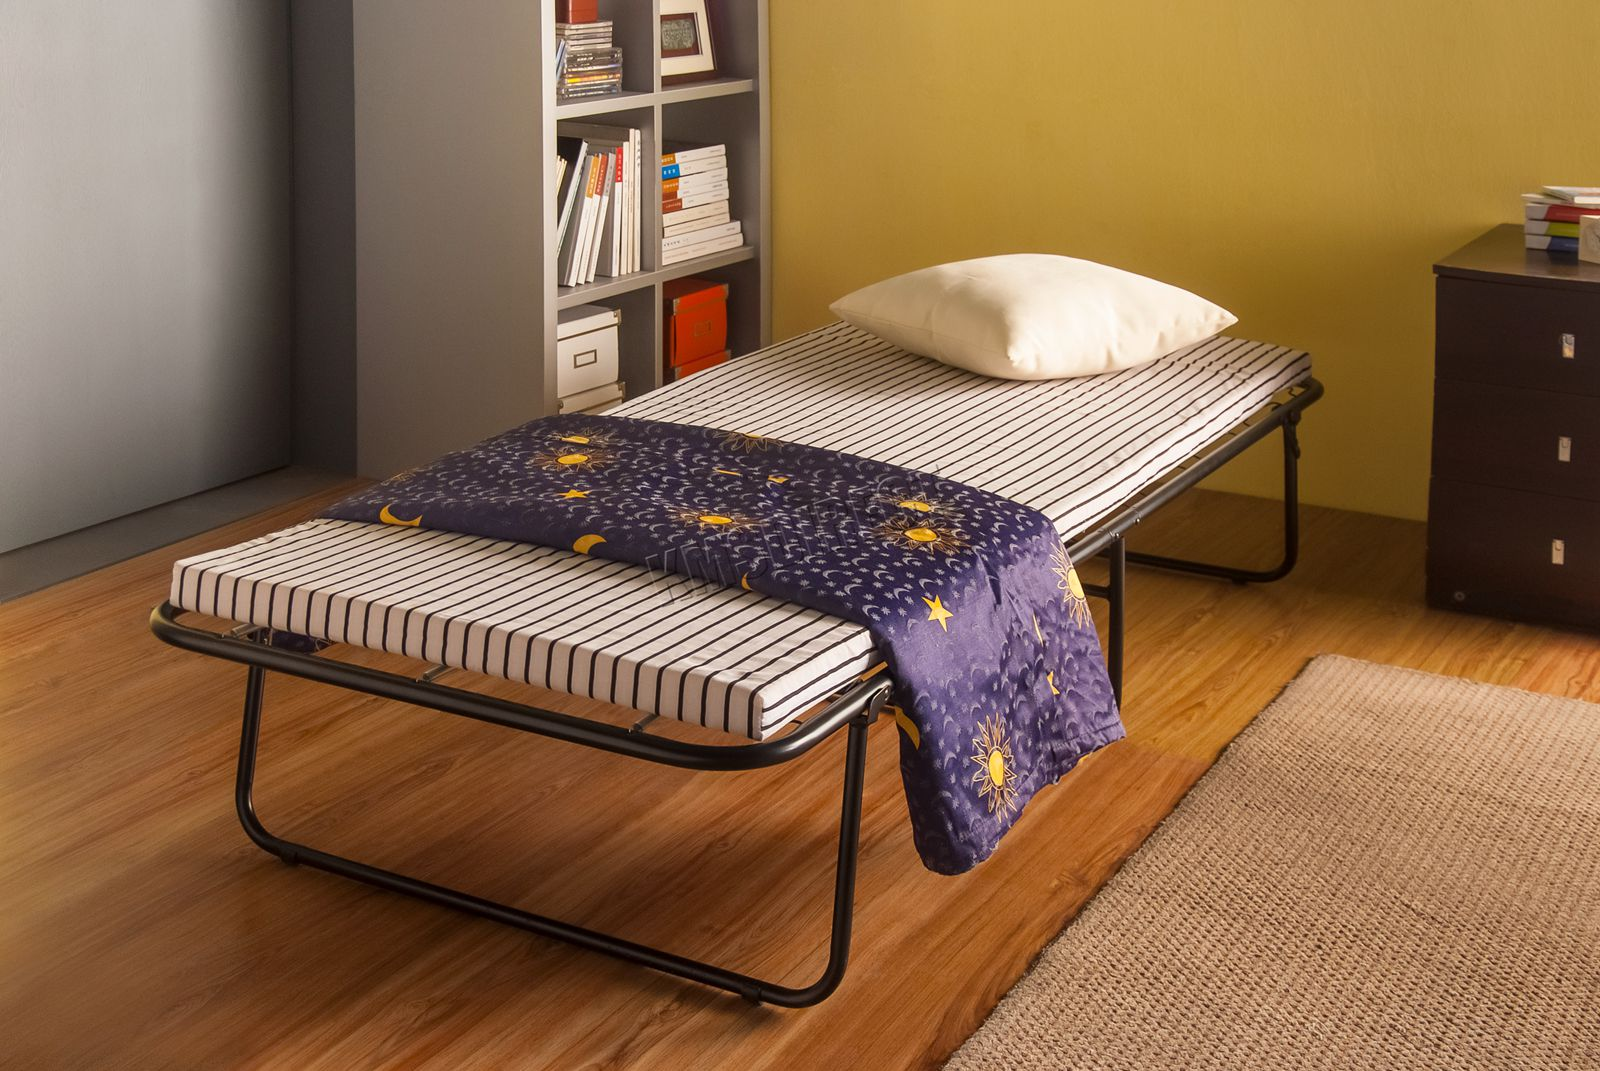 WestWood Single Metal Folding Guest Visitor Compact Bed ...